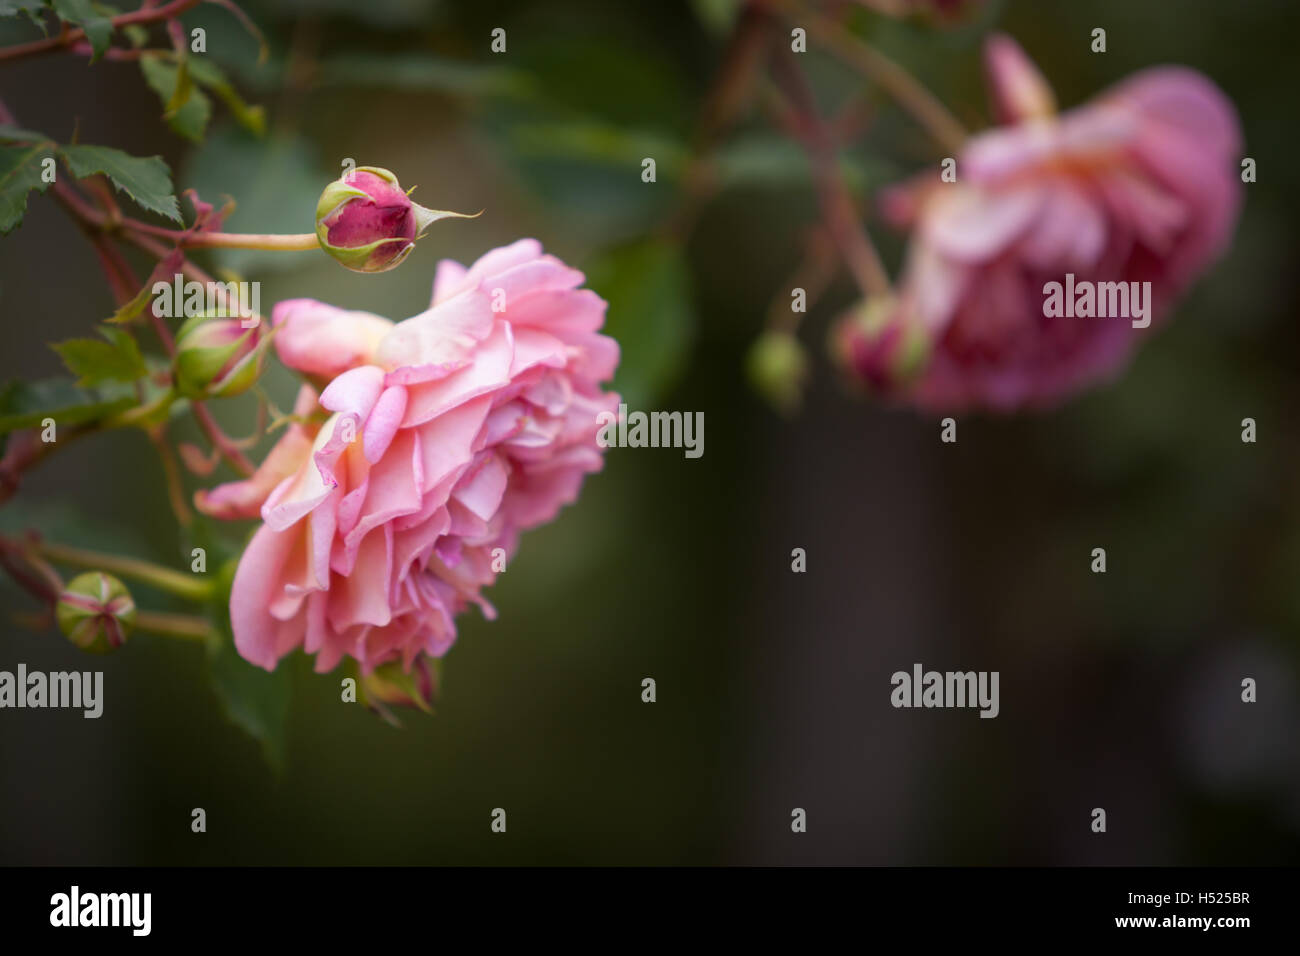 Pink rose in an English country garden in the summer time - Stock Image